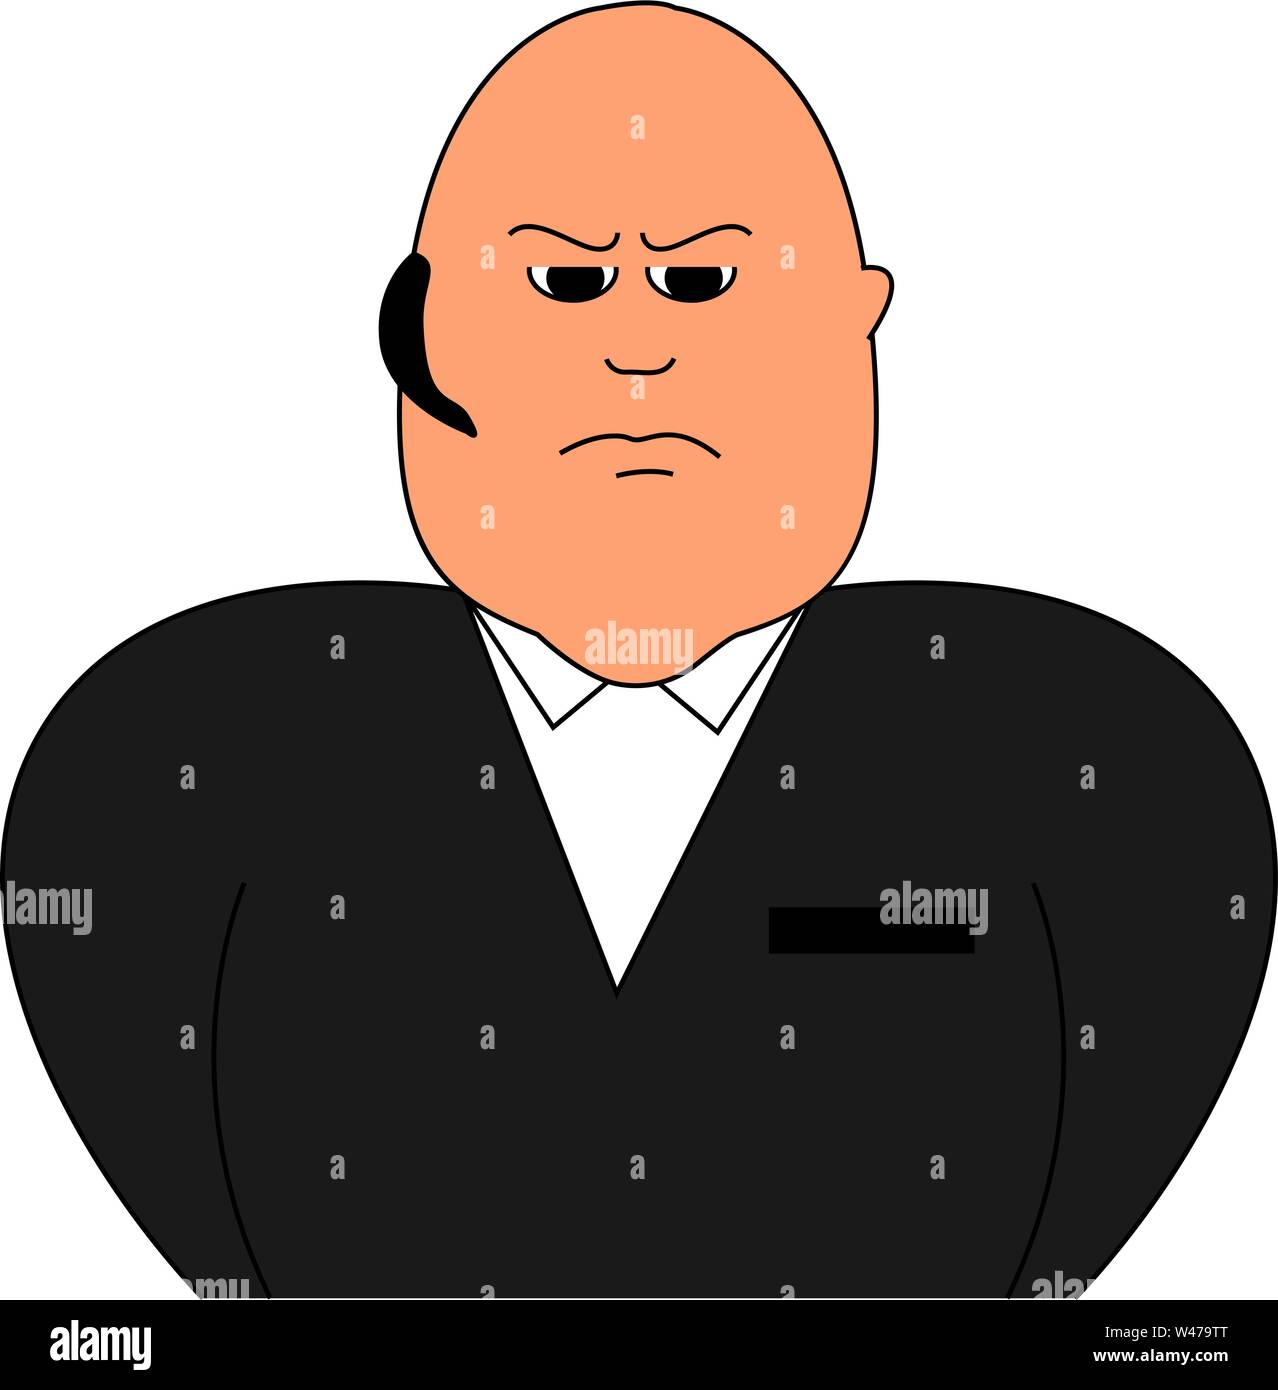 Security guard, illustration, vector on white background. Stock Vector